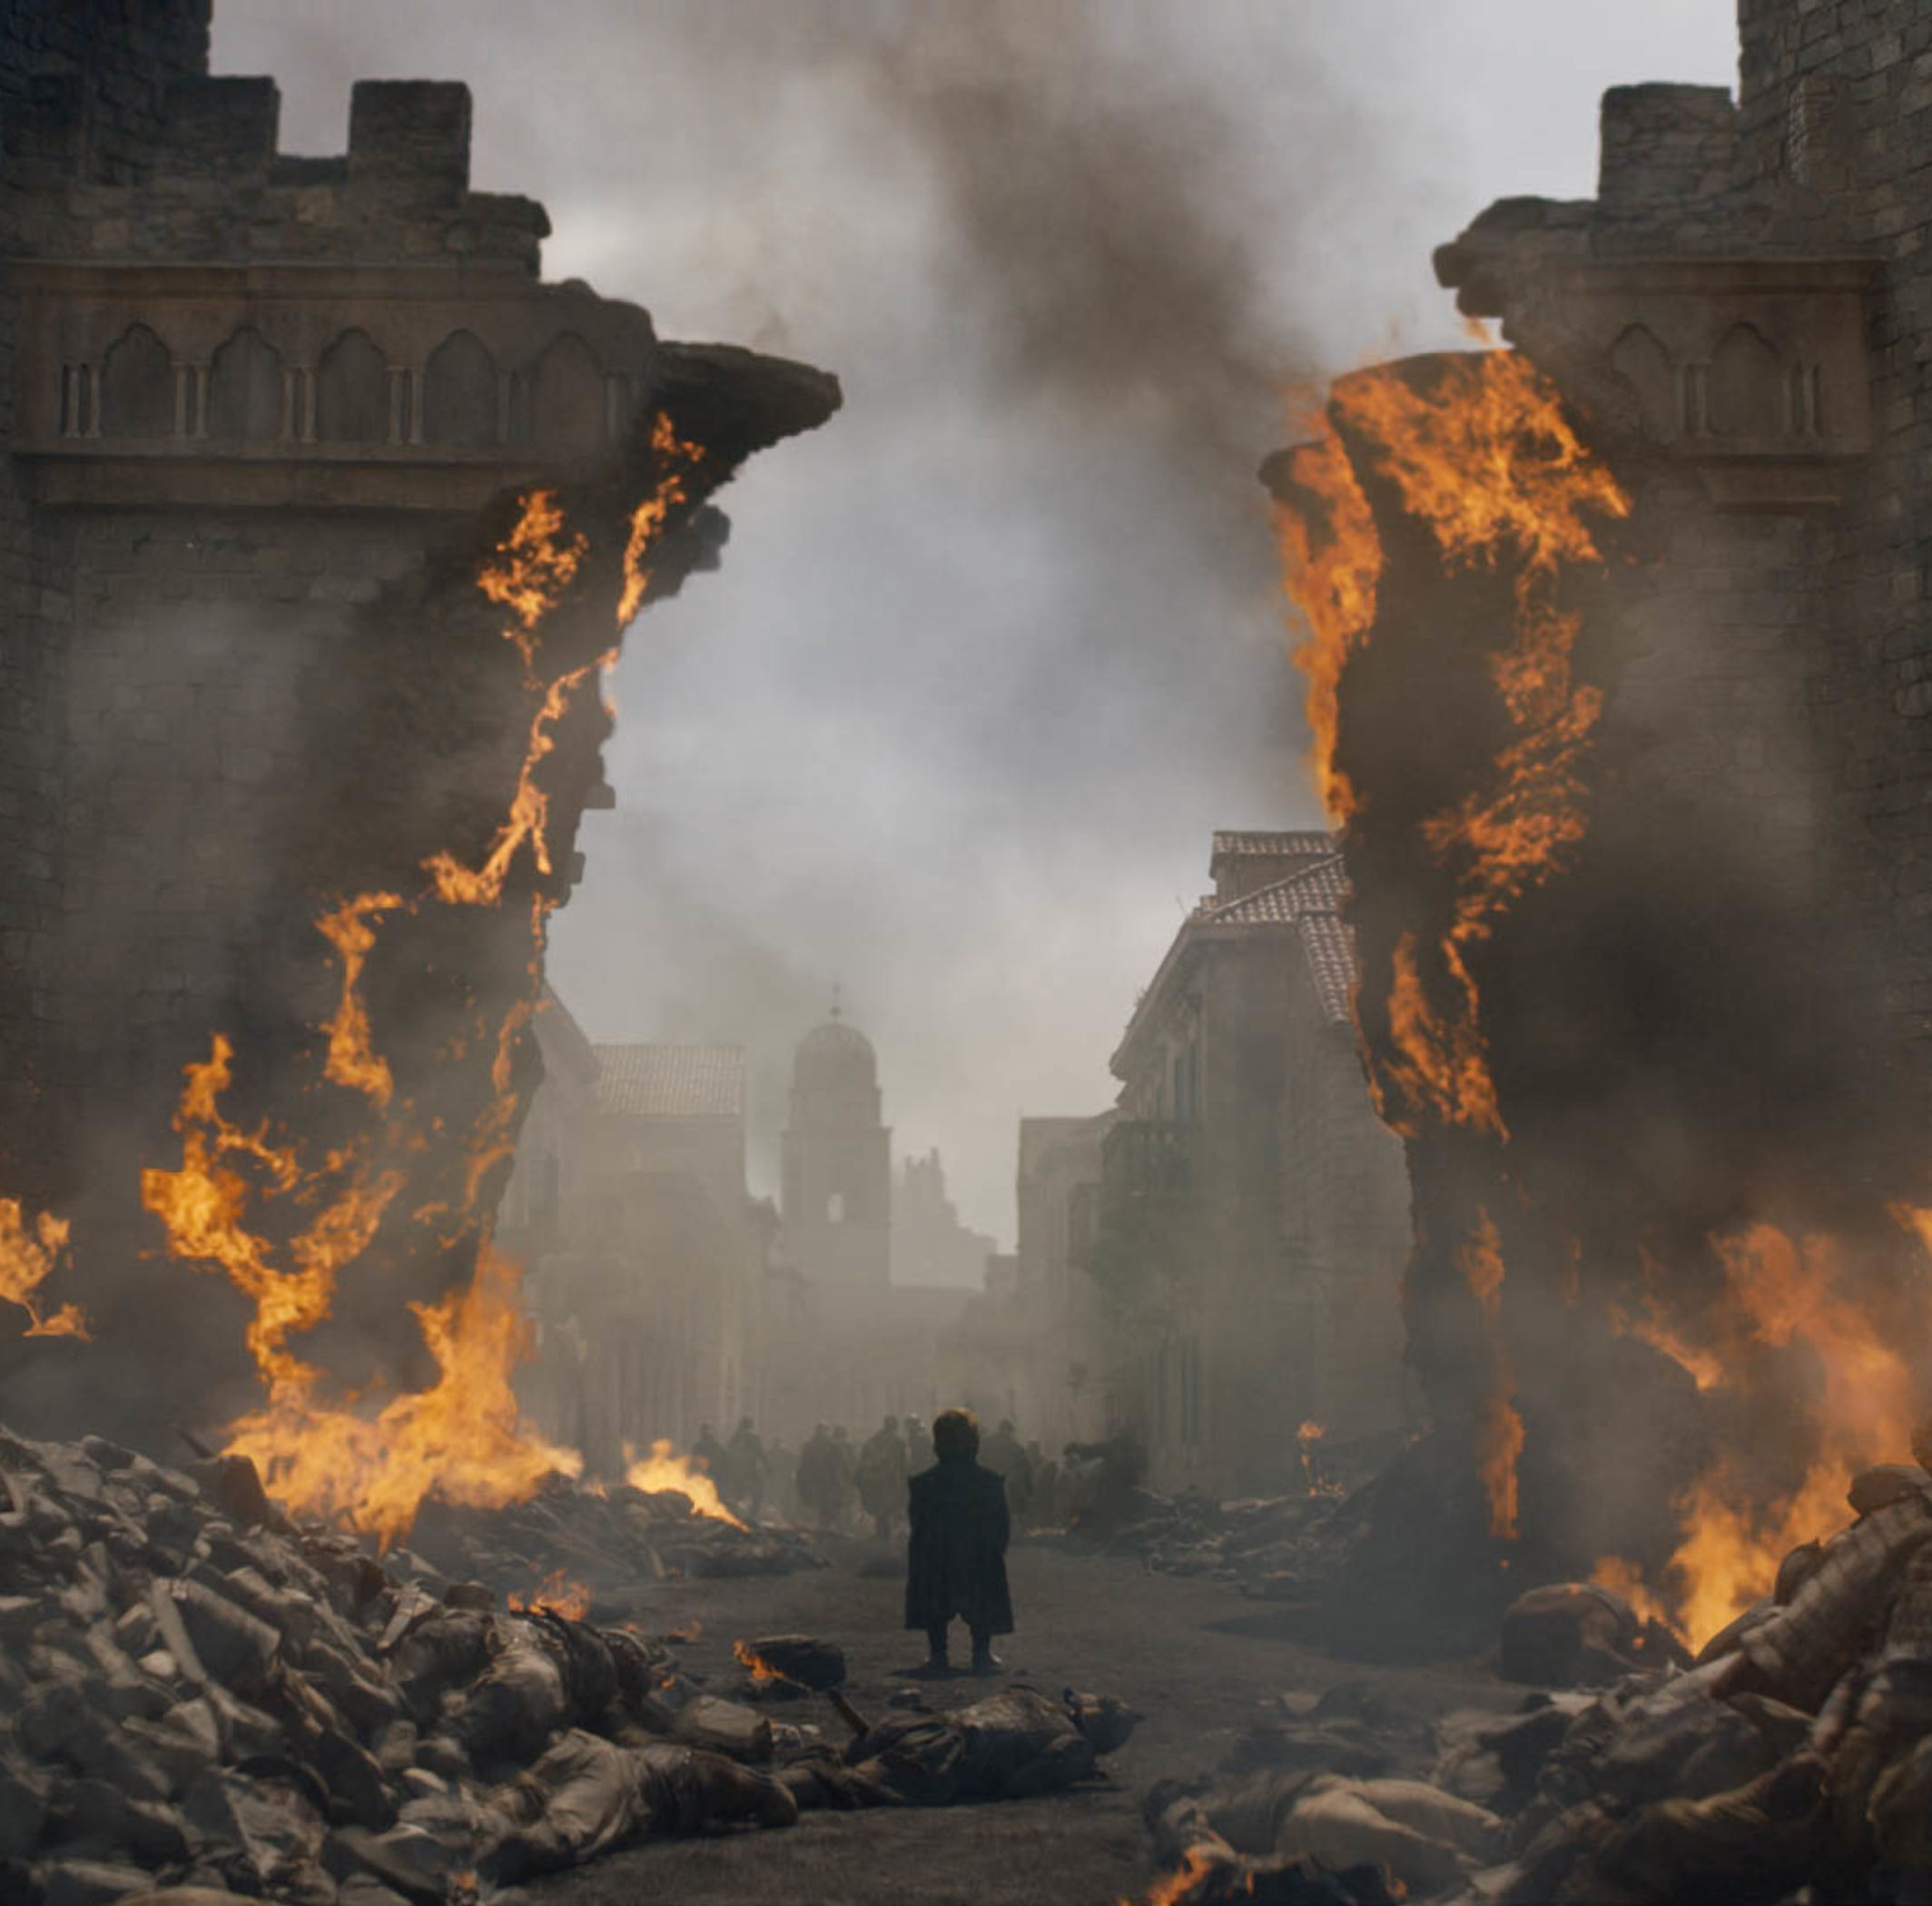 'Game of Thrones' Season 8 'The Bells' recap: Writers' bad habits on display in episode